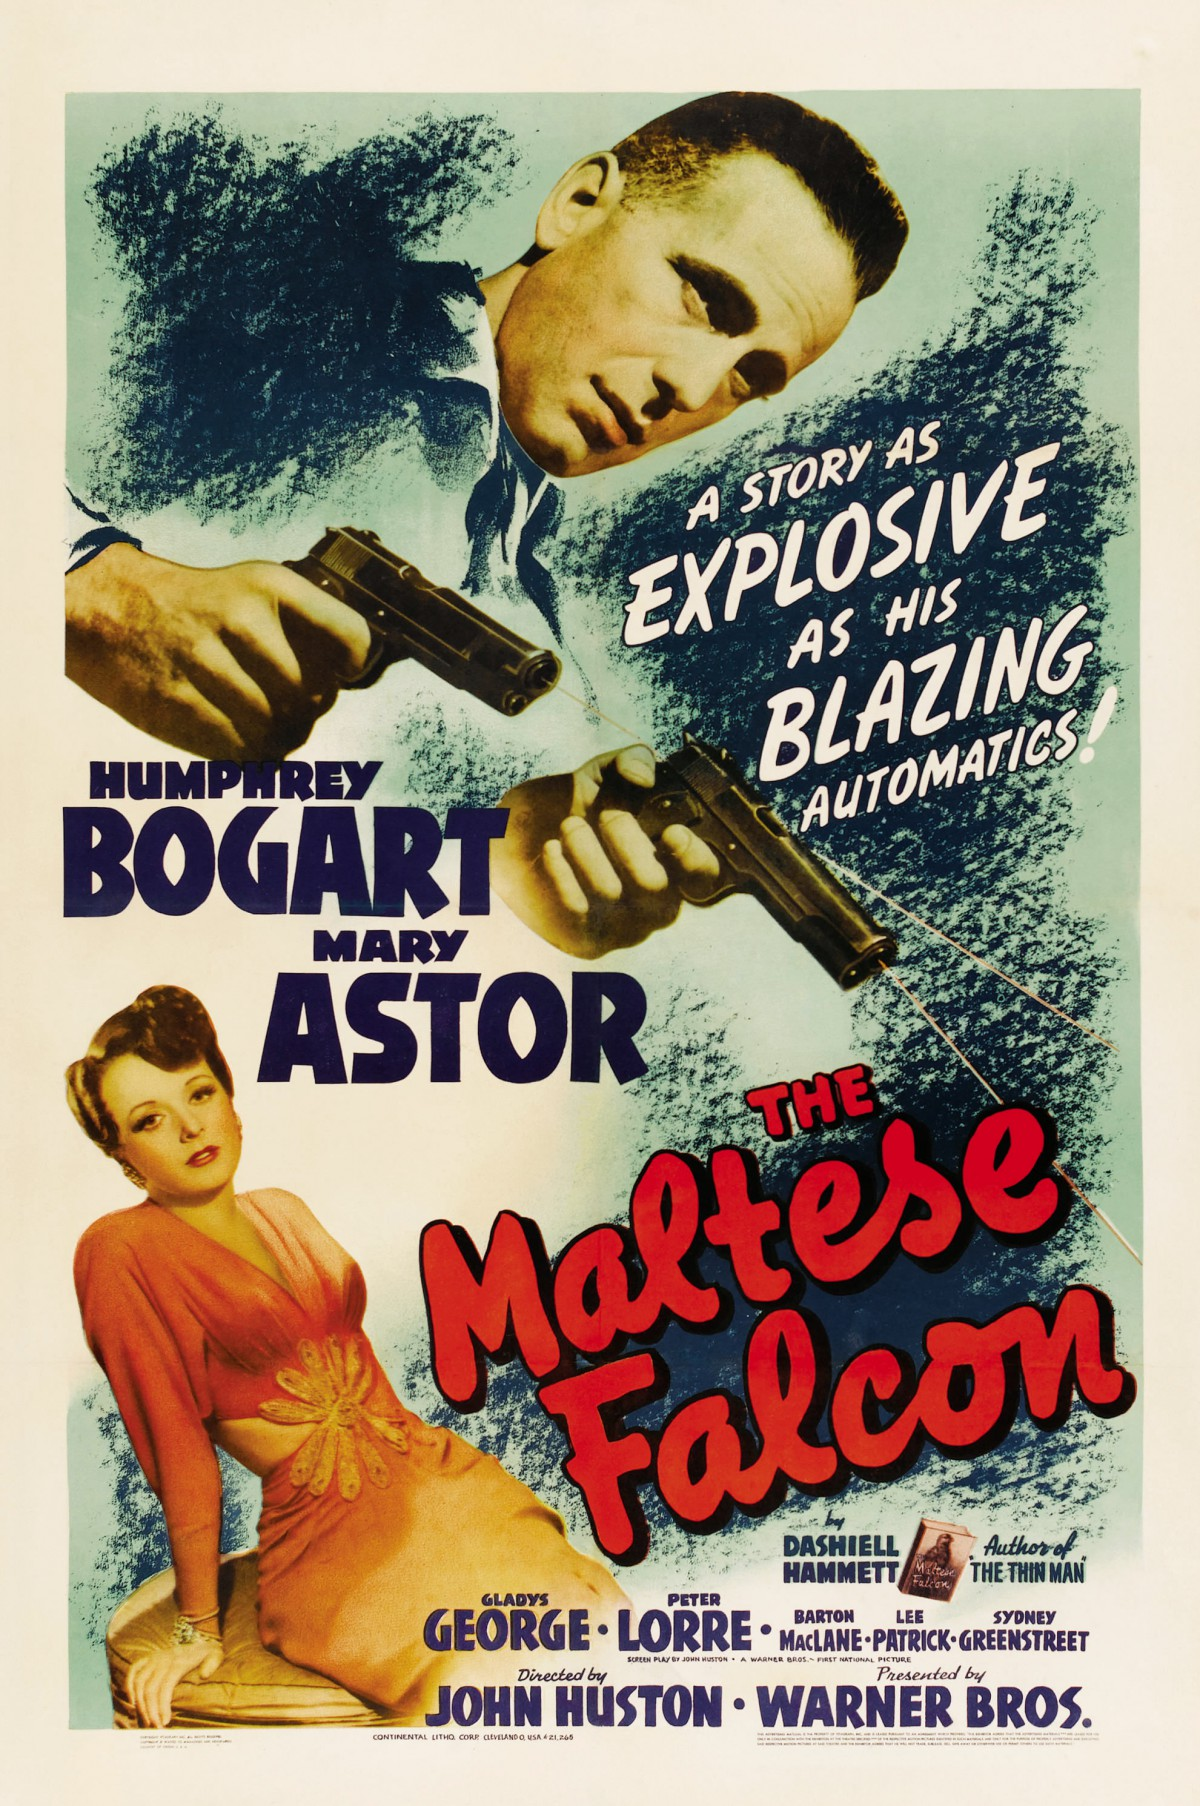 62. The Maltese Falcon (1941)